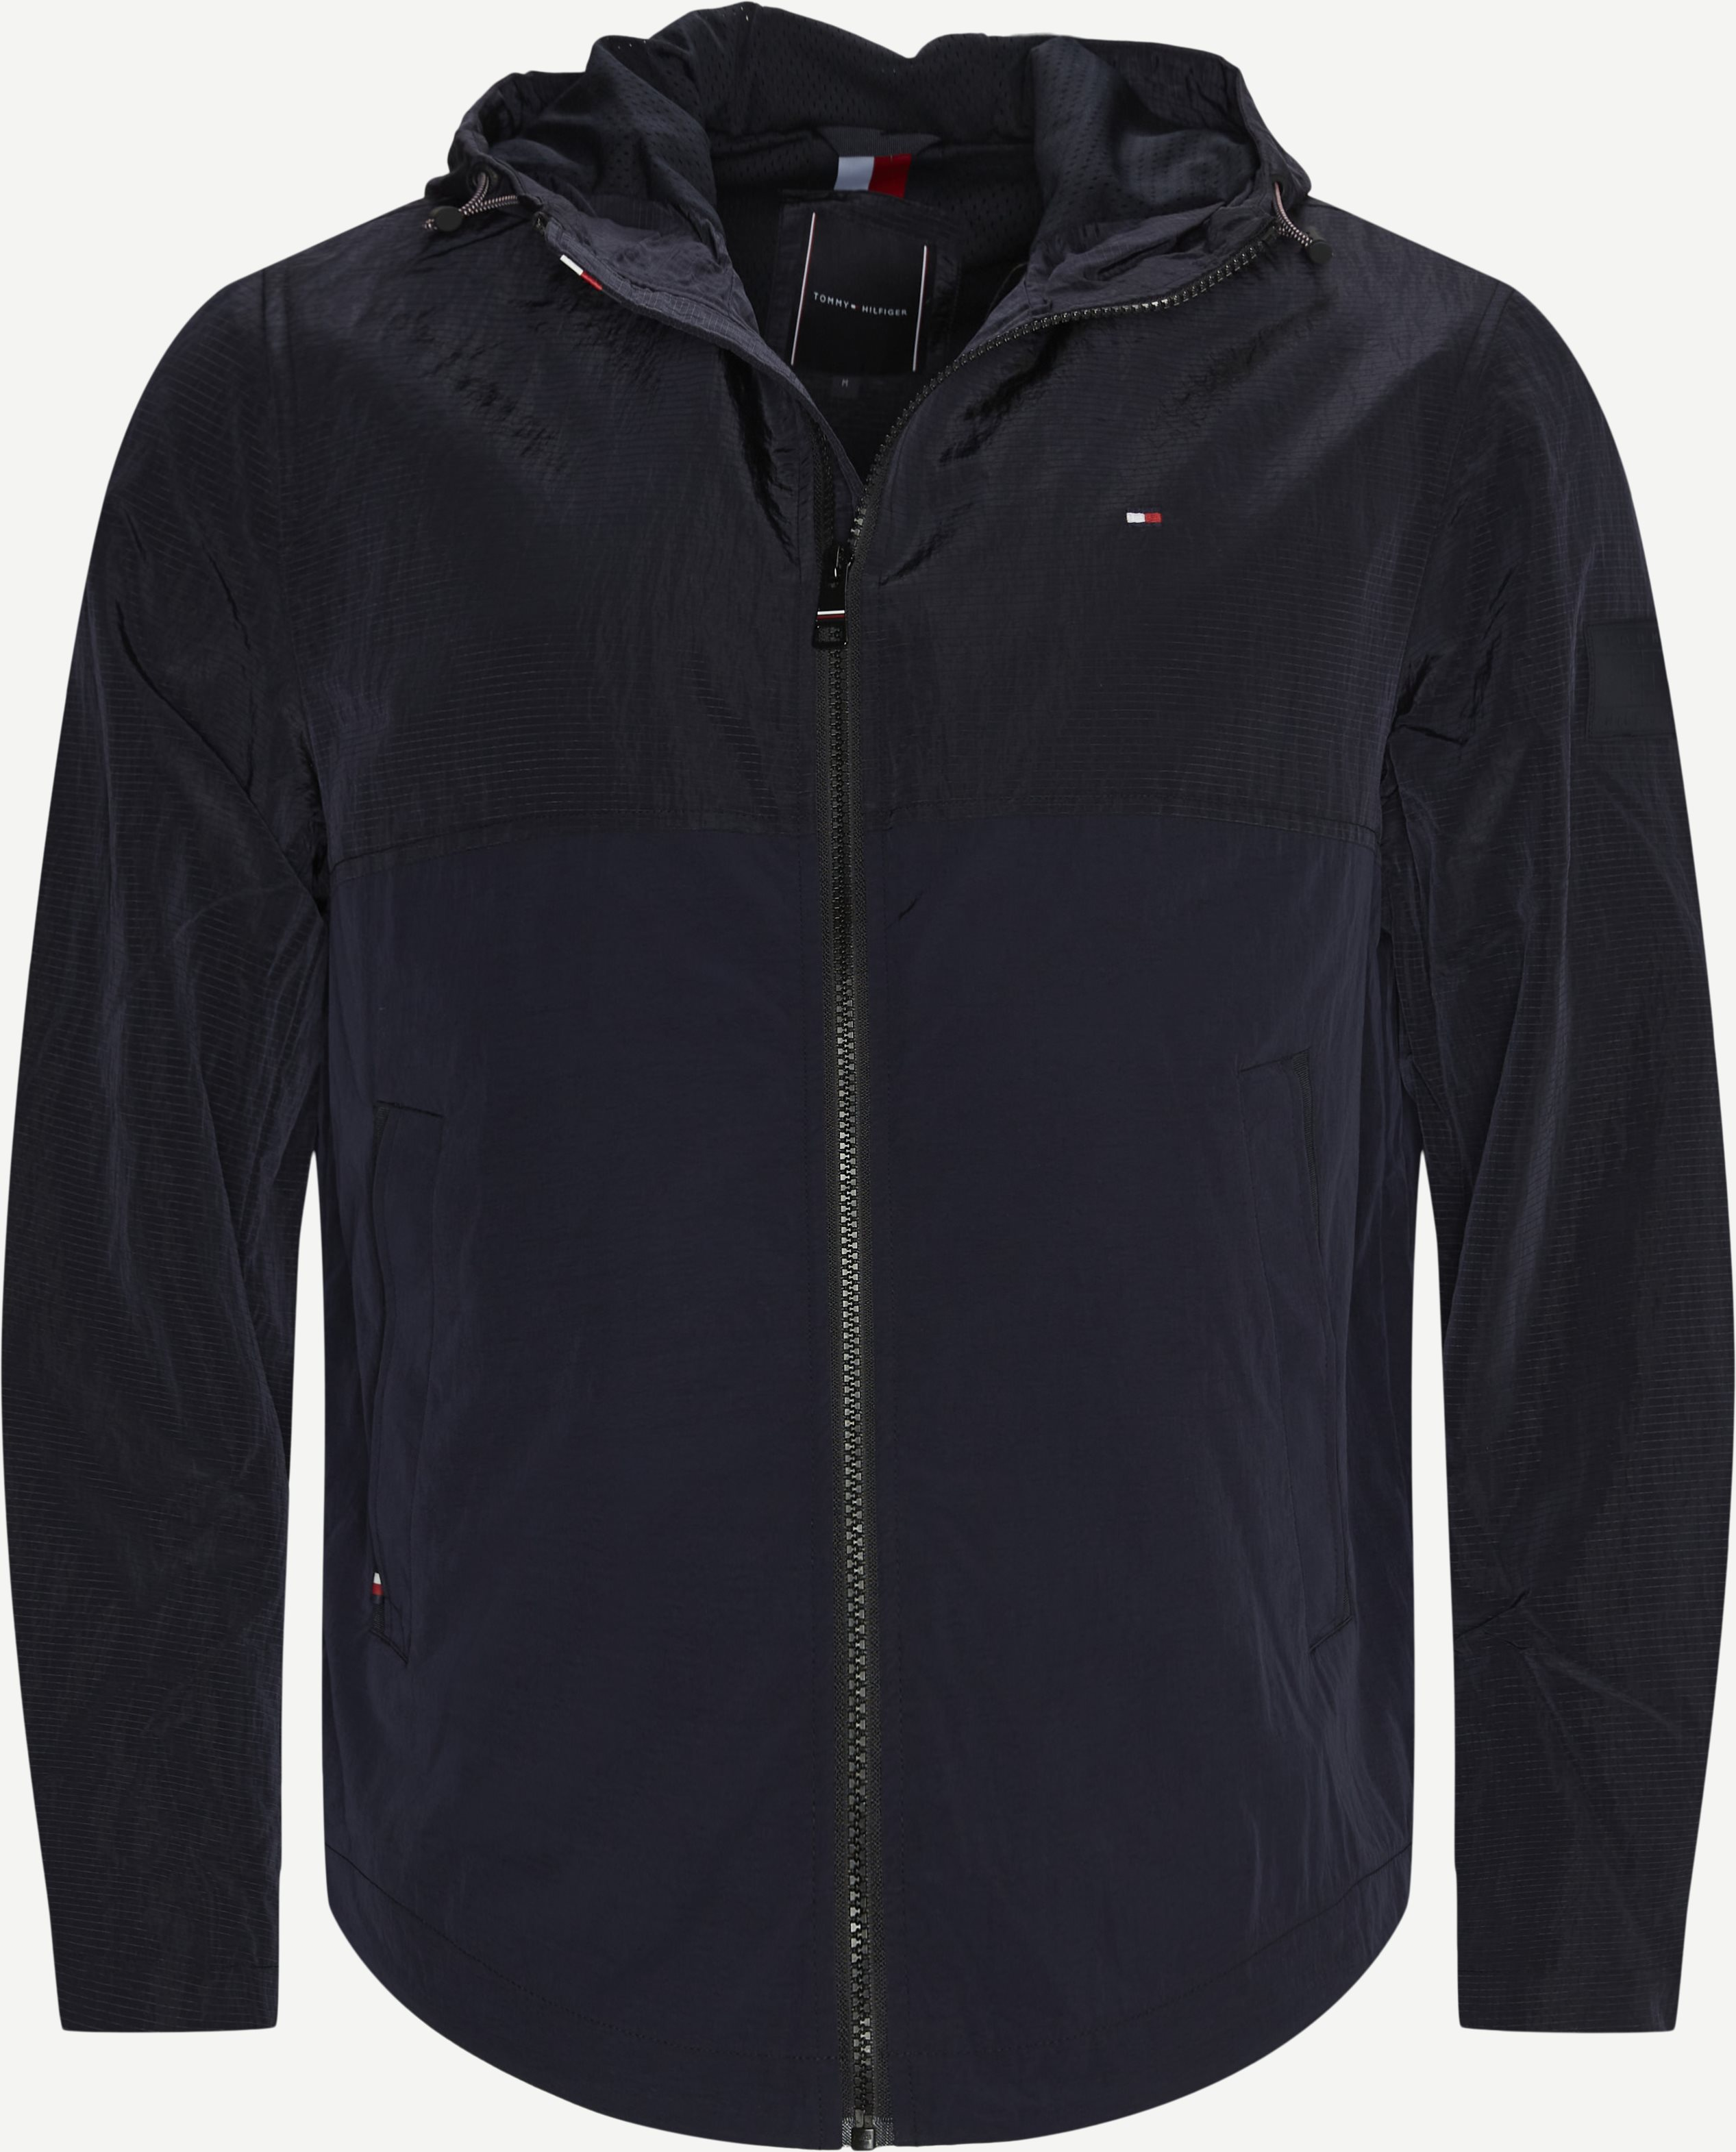 Lightweight Hooded Jacket - Jakker - Regular - Blå